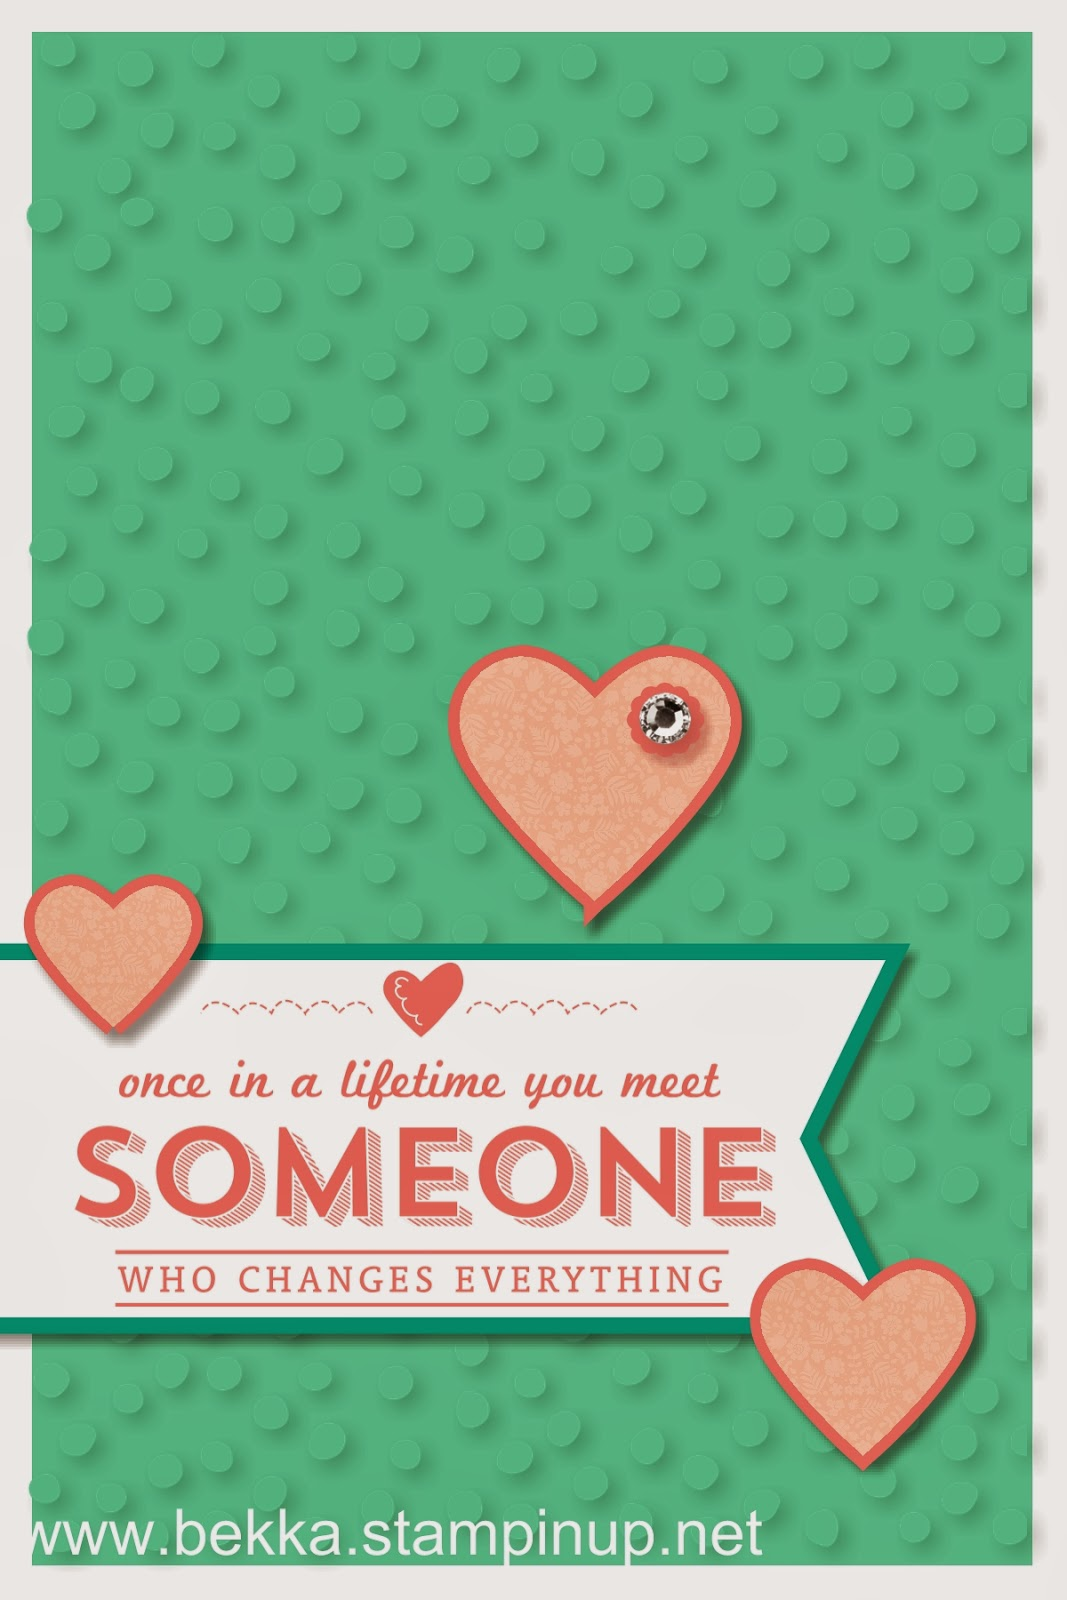 Someone Who Changes Everything Digital Card by UK based Stampin' Up! Demonstrator Bekka Prideaux - check her blog every Monday for digital inspiration